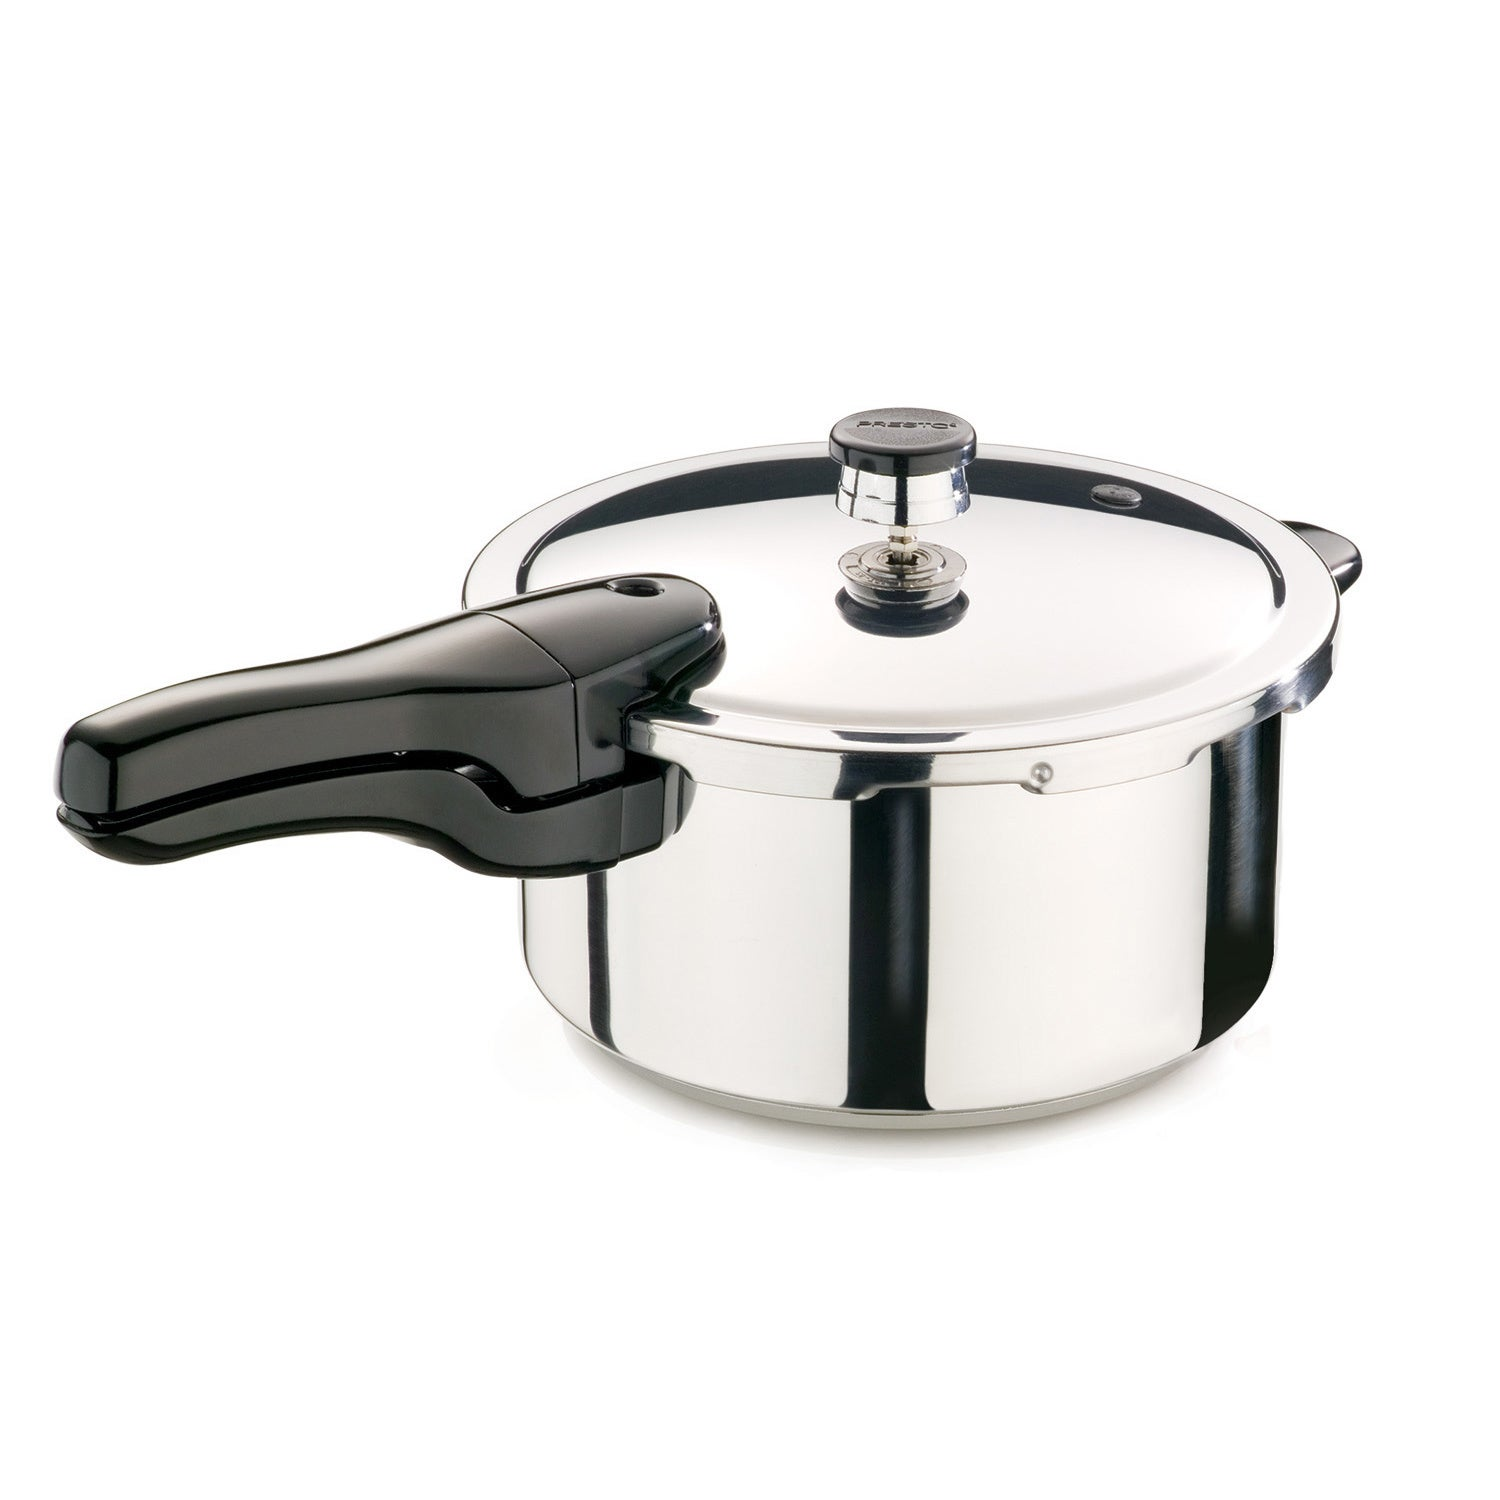 Presto 4-quart Stainless Steel Pressure Cooker, Silver (M...